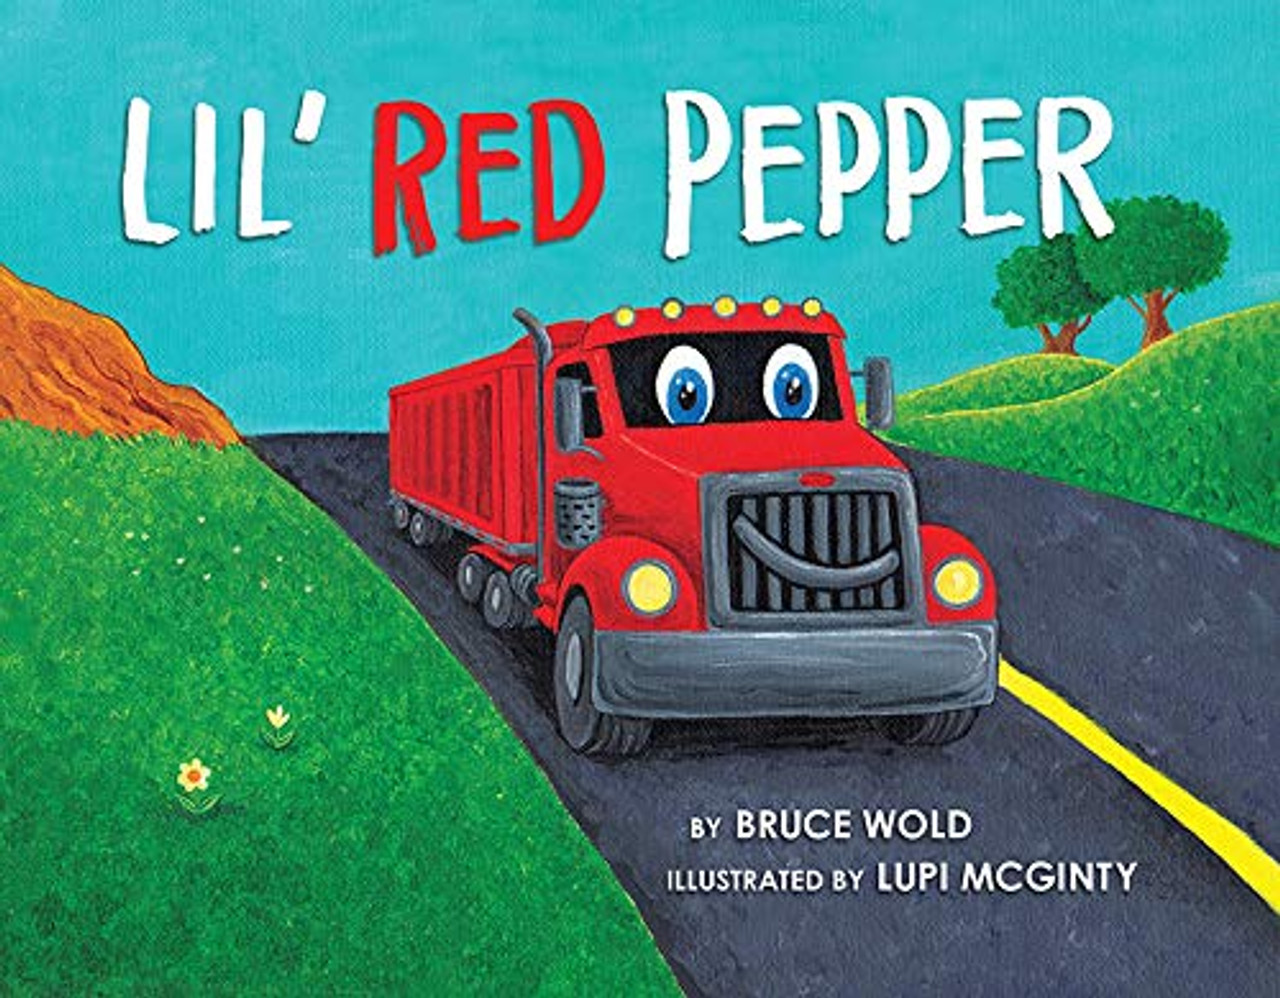 Lil' Red Pepper